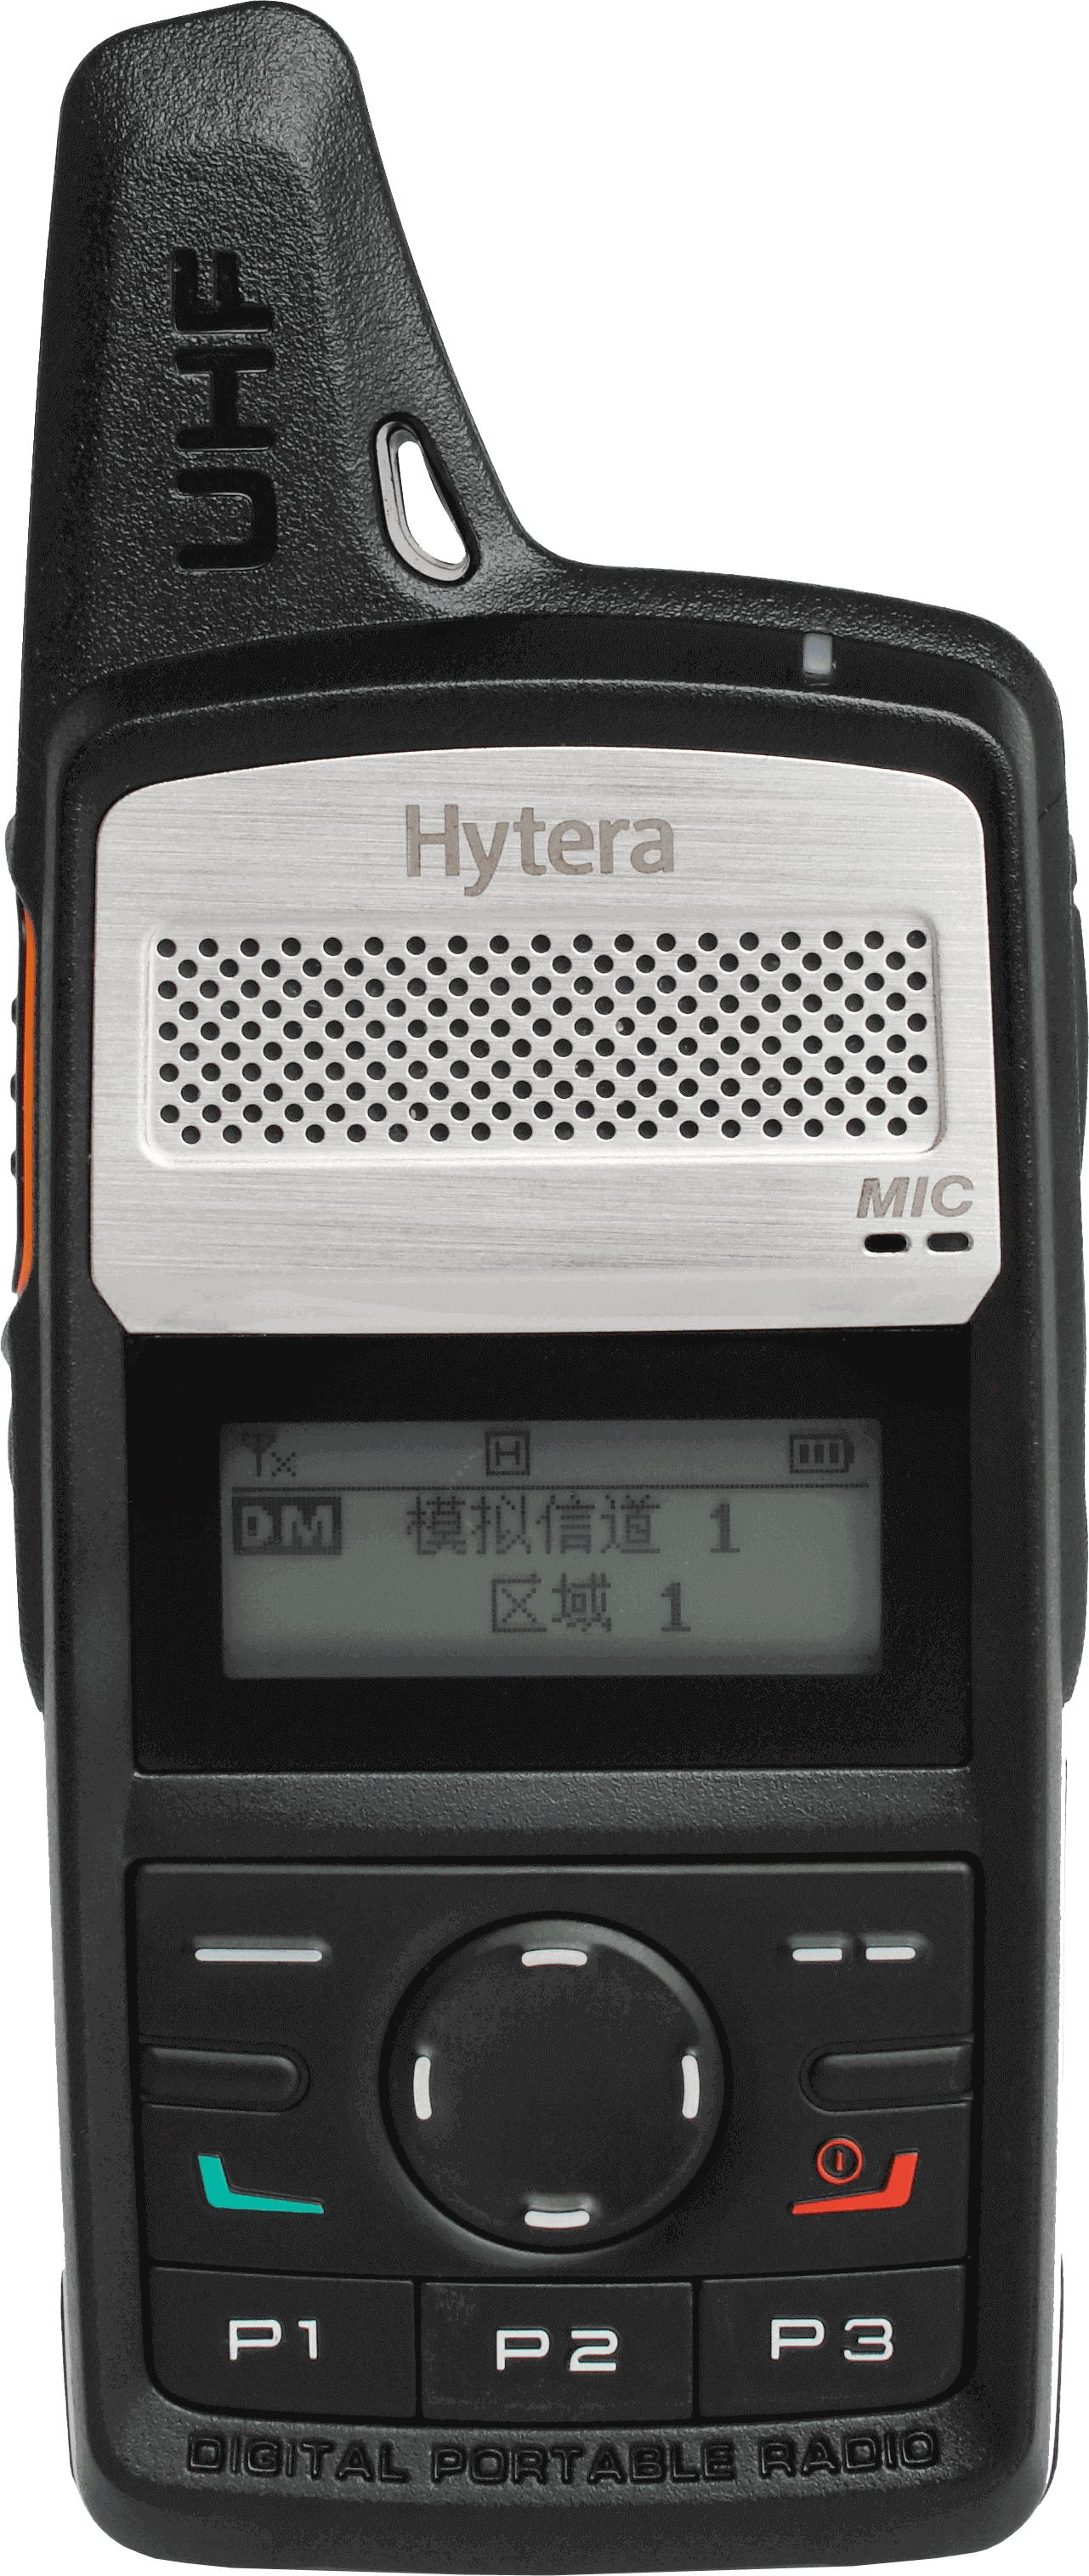 Hytera PD365 featured image